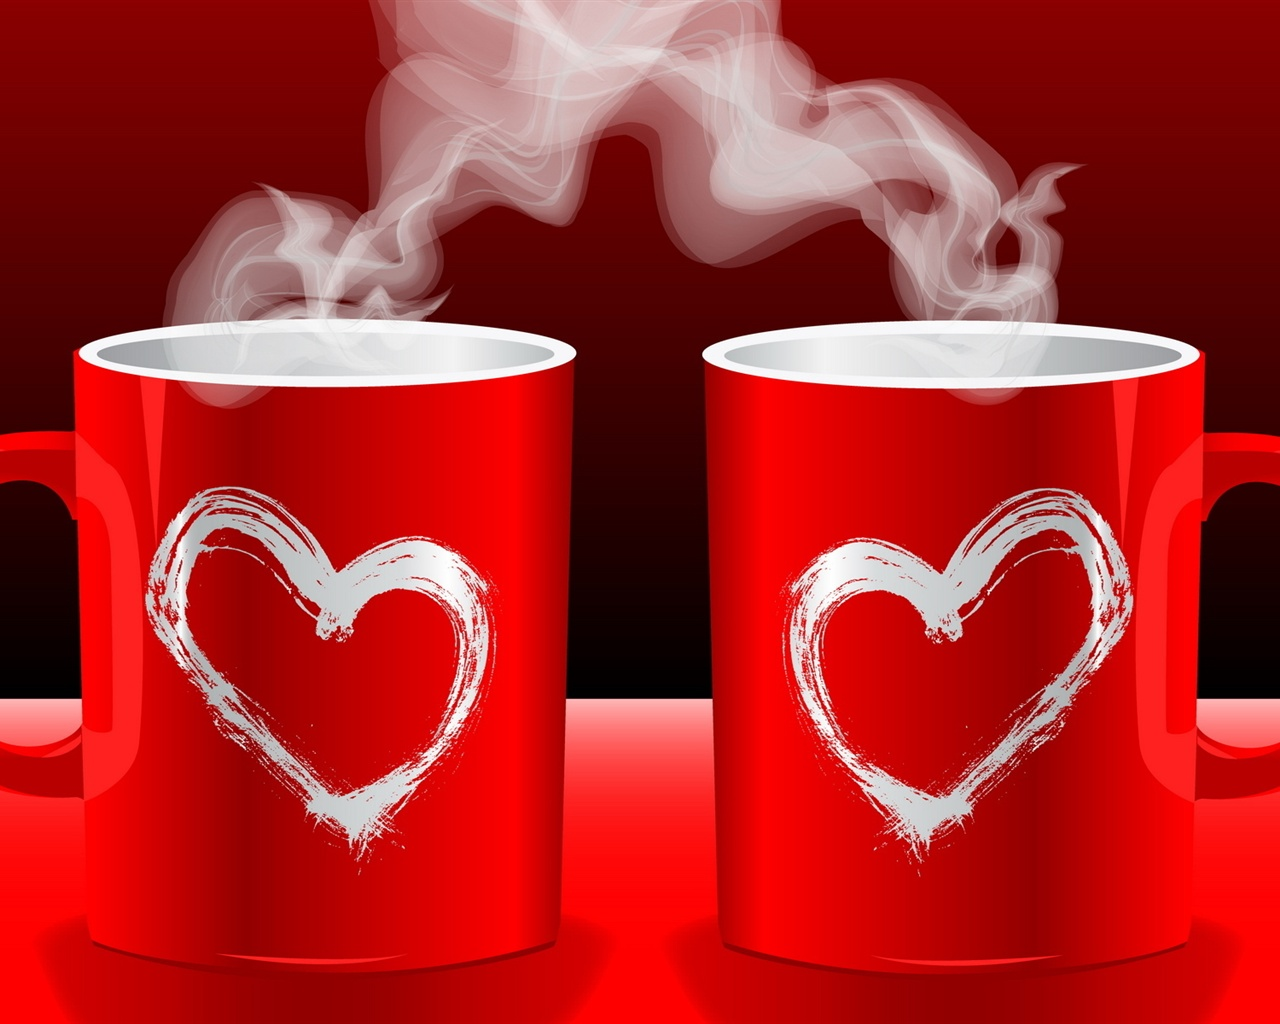 Coffee Lovers Love Hd Wallpapers: Fonds D'écran Red Tasses De Café Amour Couple 1920x1200 HD